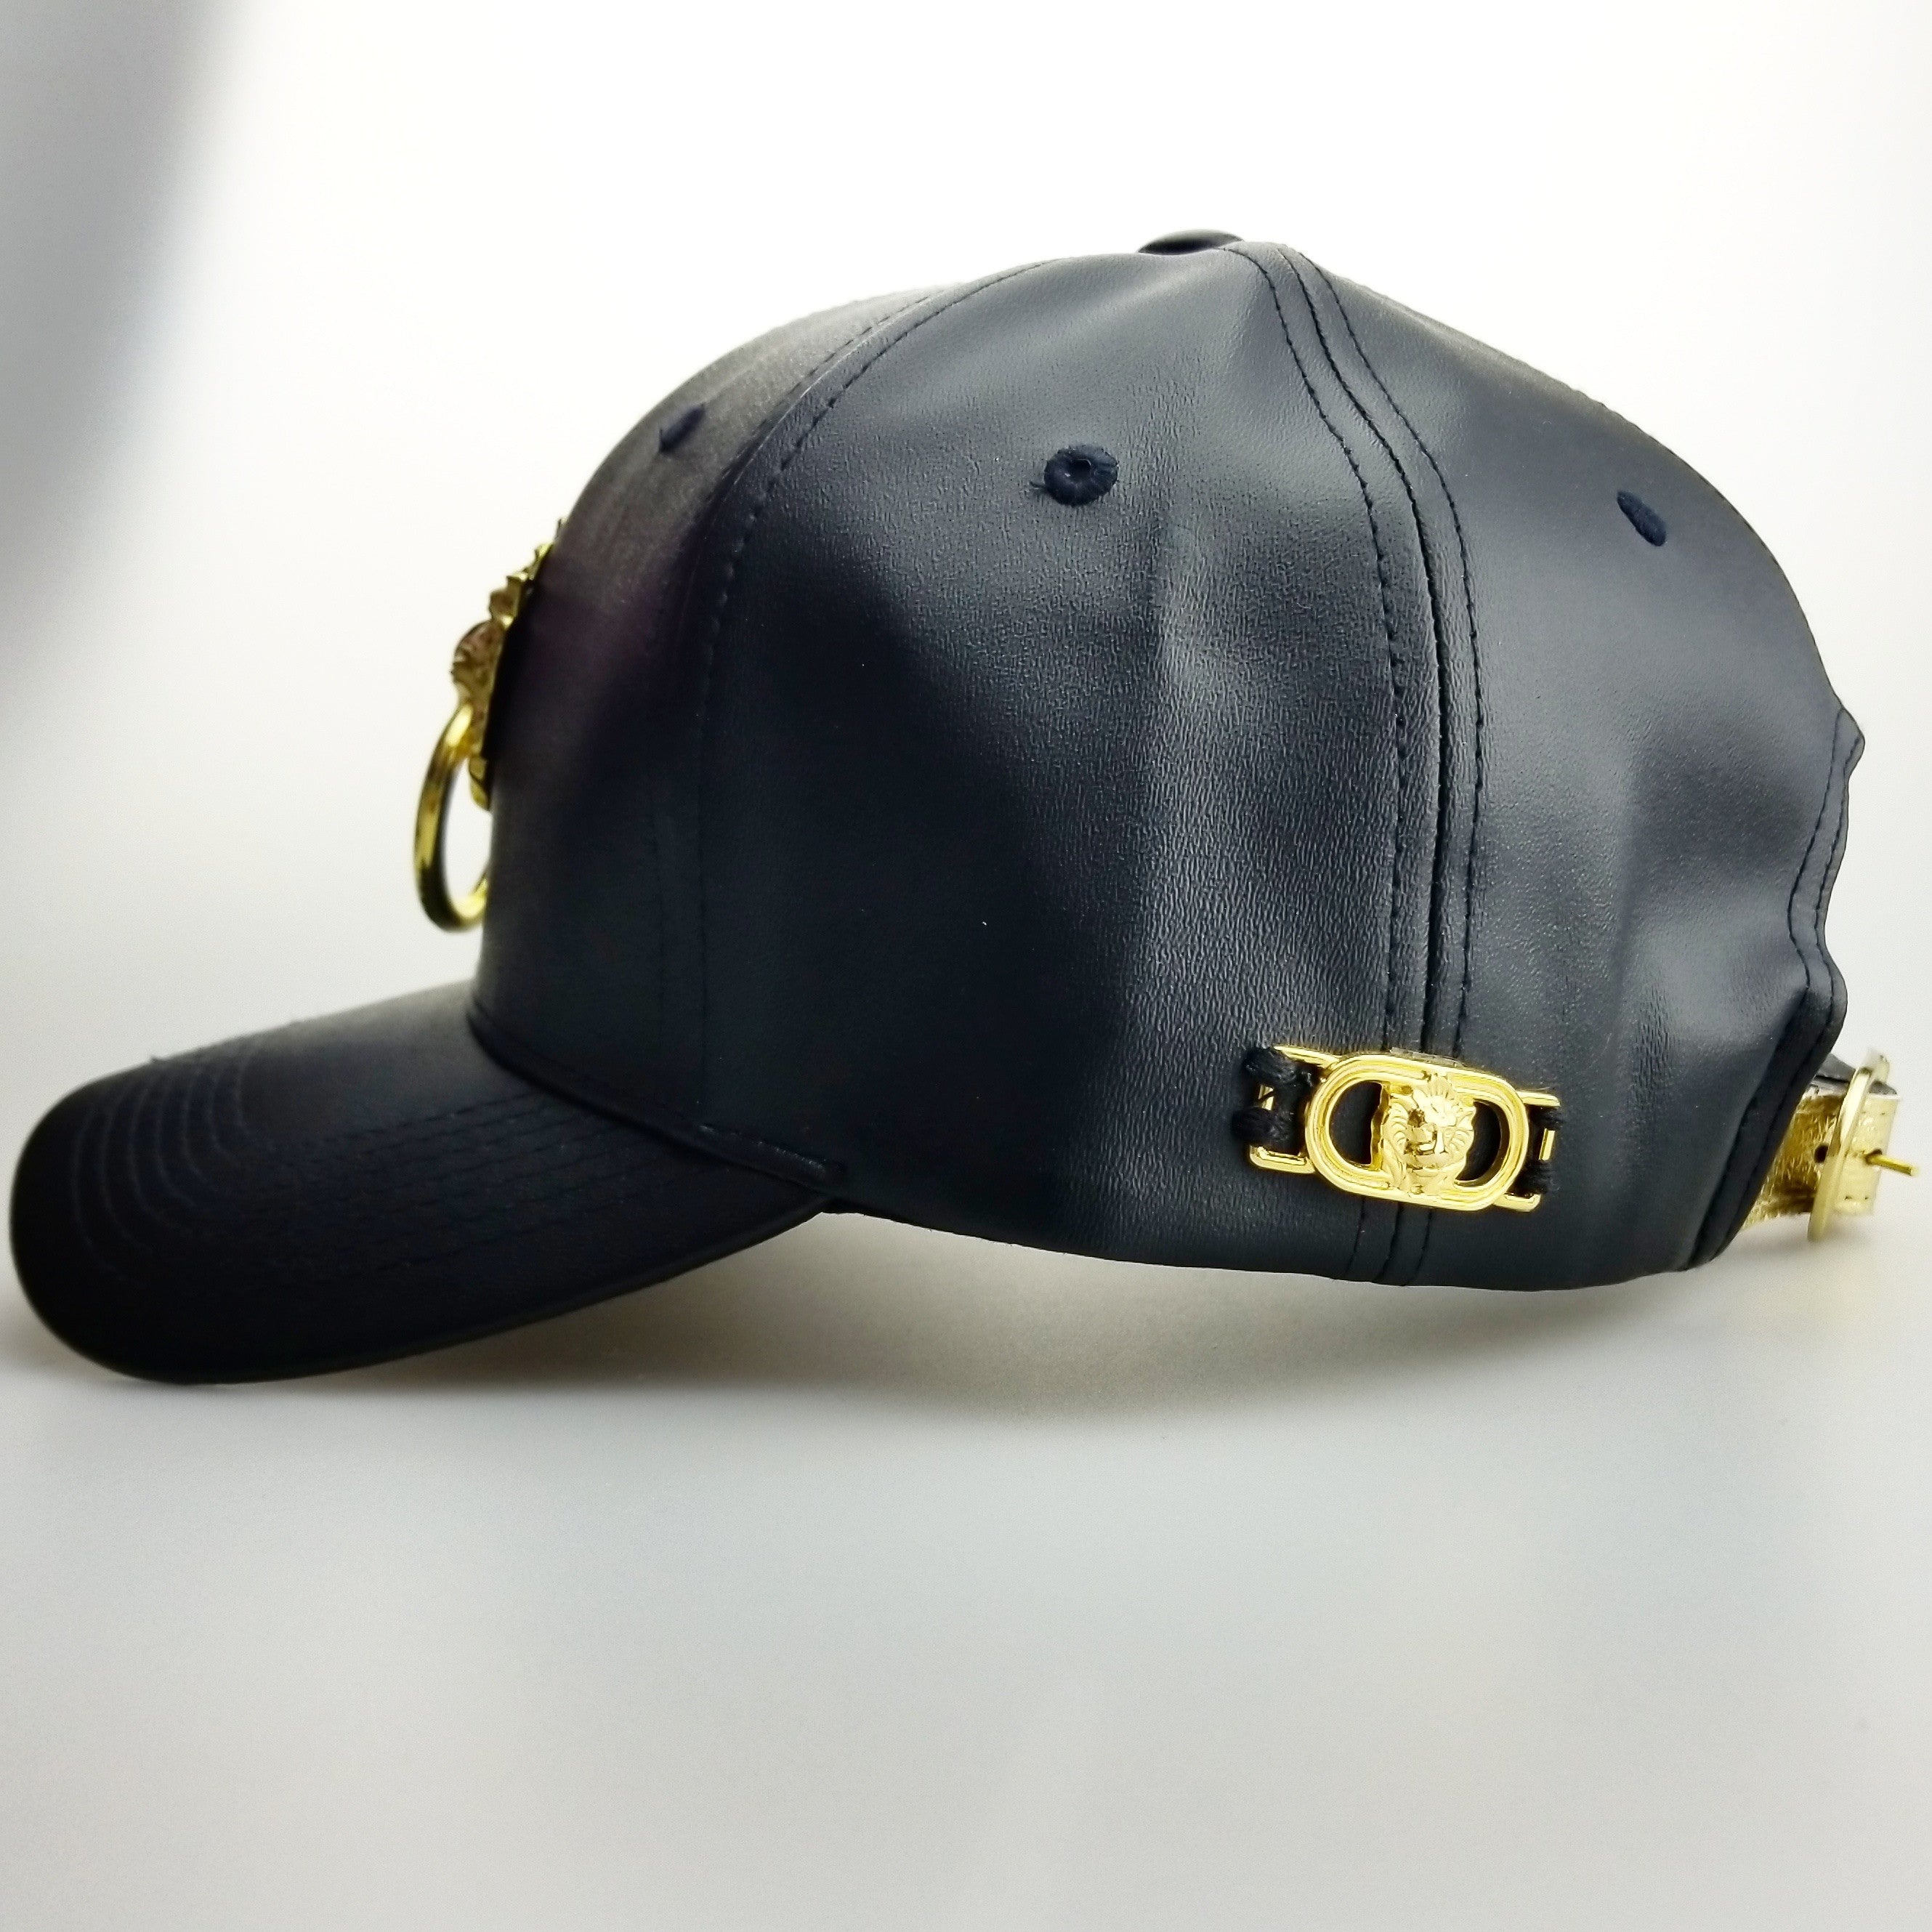 a90e49749 Faux Leather Curved Bill Lion Head Cap ( Black or White) | Eyehunee